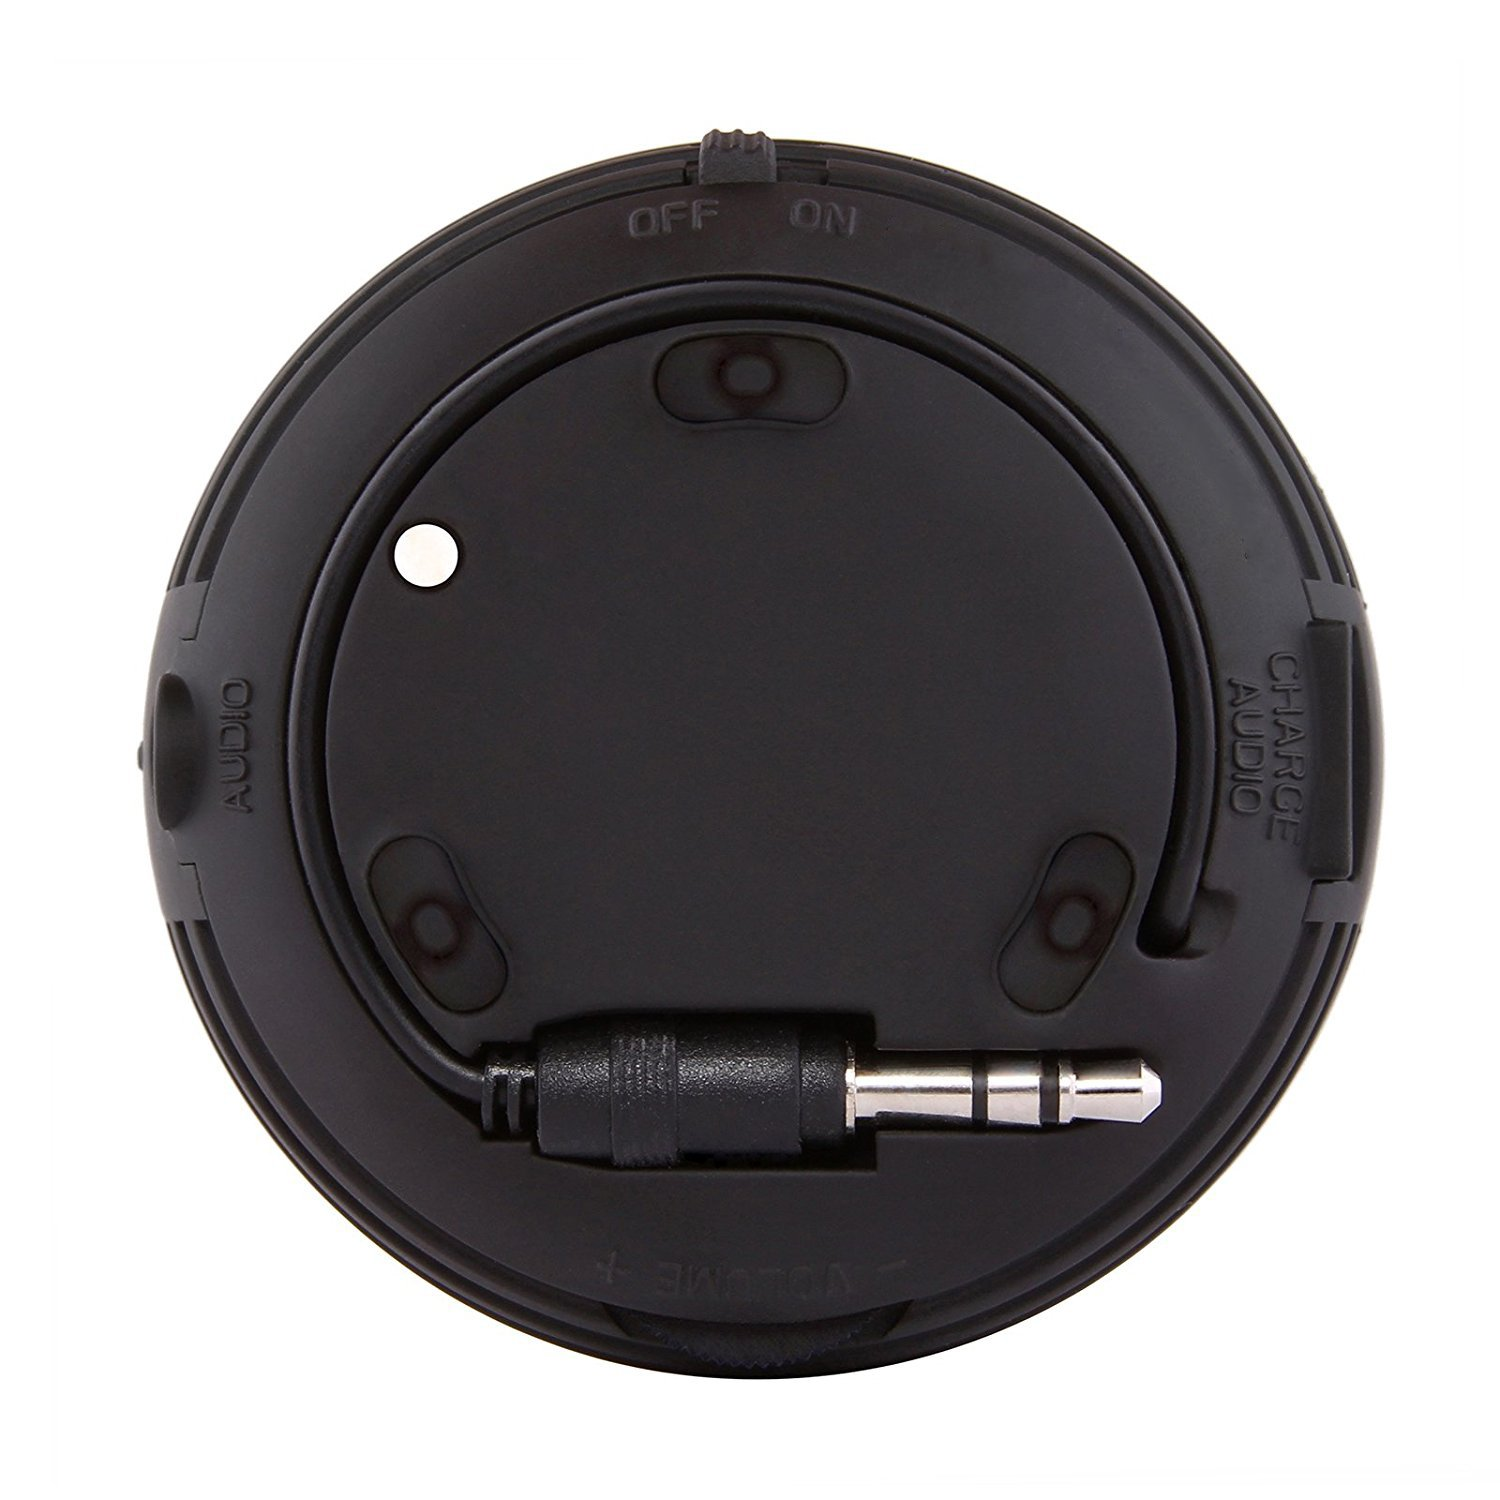 I-VOM Expandable BASS Resonator + Mini Speaker for iPhone/iPad/iPod/MP3 Player/Laptop - Black by I-VOM (Image #3)